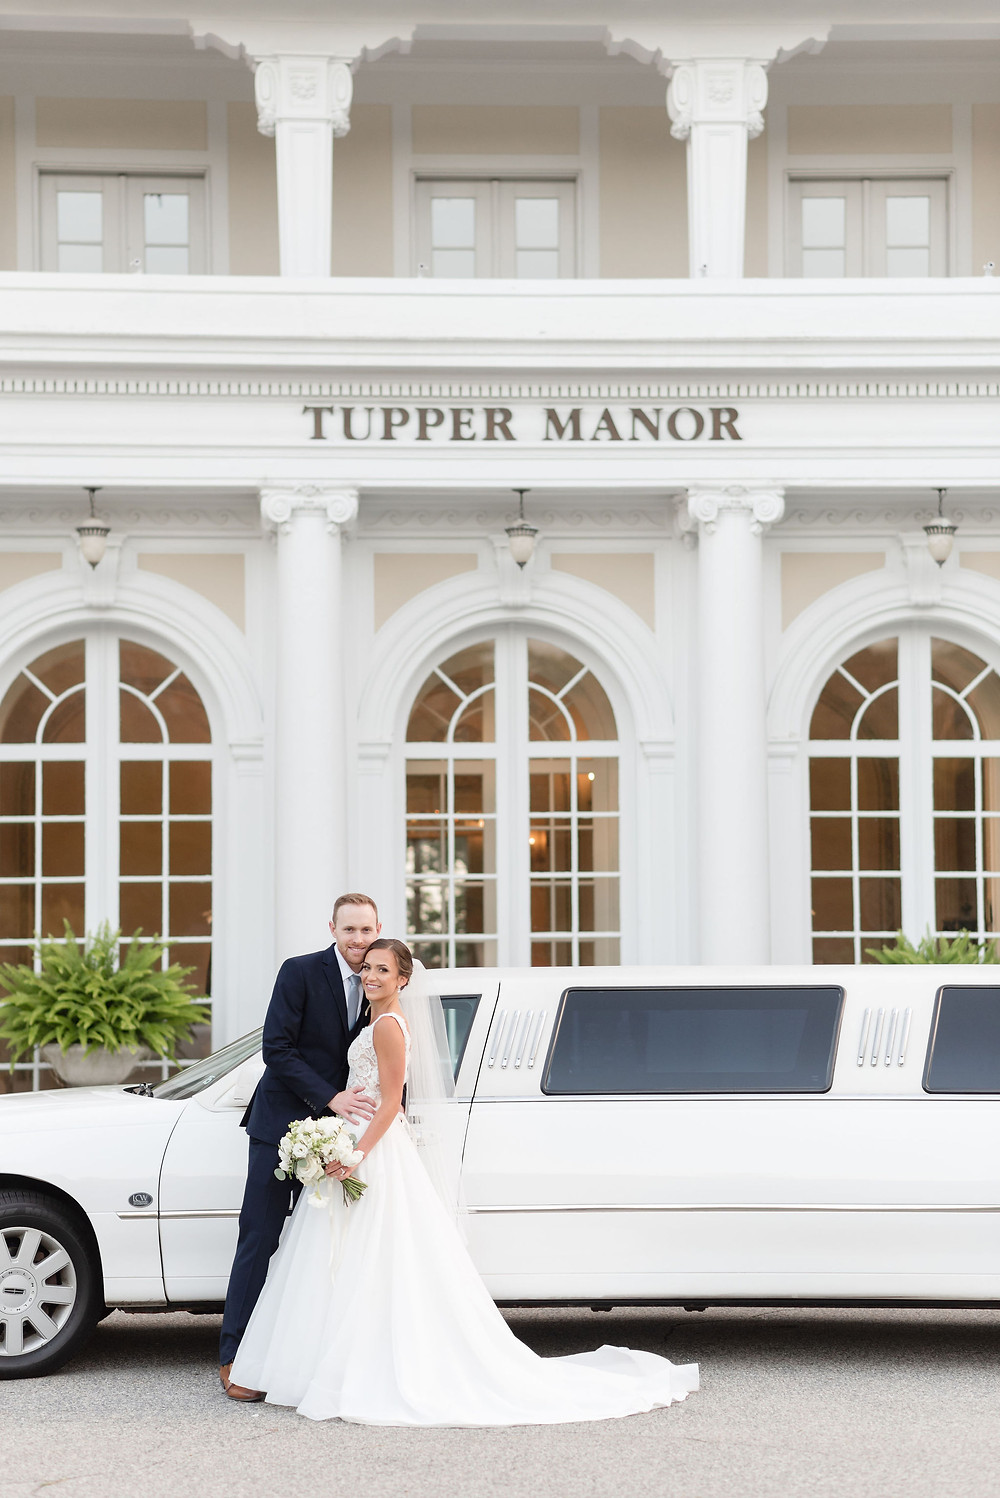 couple standing in front of tupper manor front entrance with white stretch limo